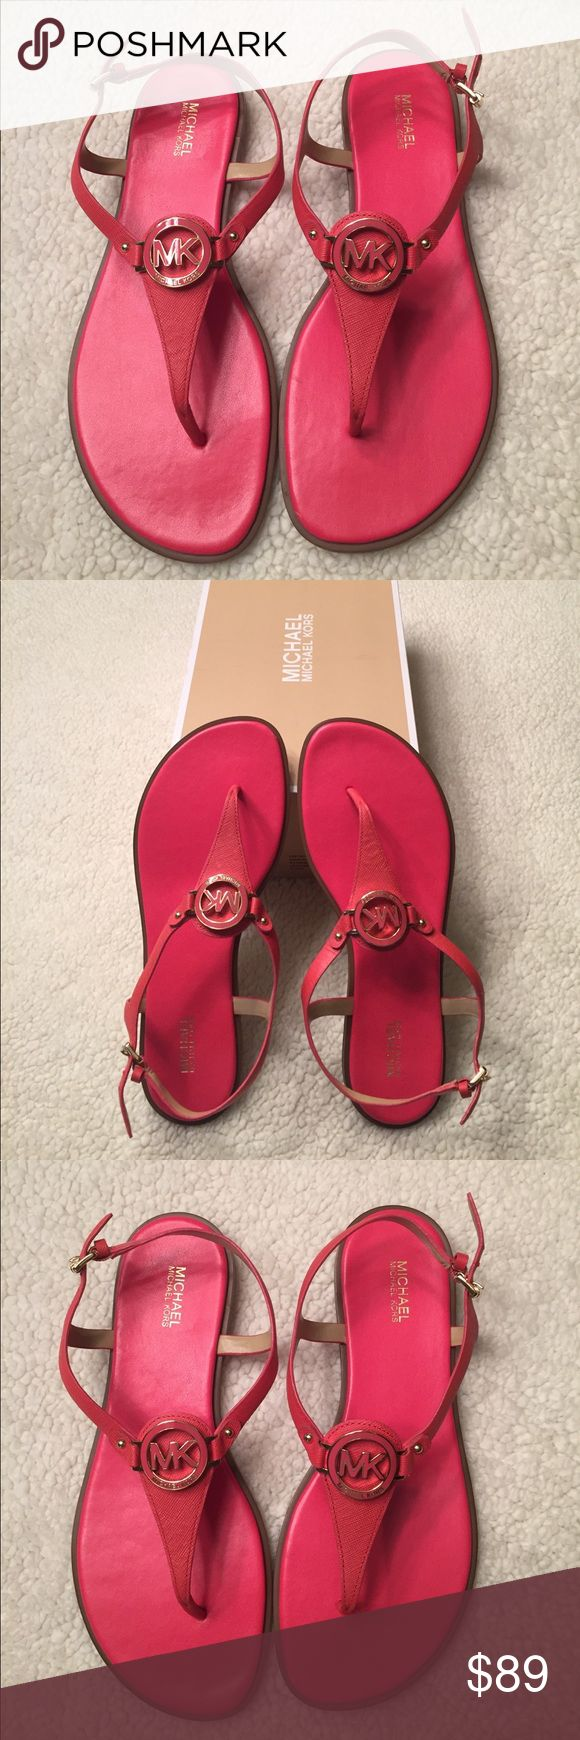 HUGE PRICE REDUCTION - TODAY ONLY!!! Brand new Micheal Kors leather Lee Thongs, watermelon.  New in box!!! Michael Kors Shoes Slippers